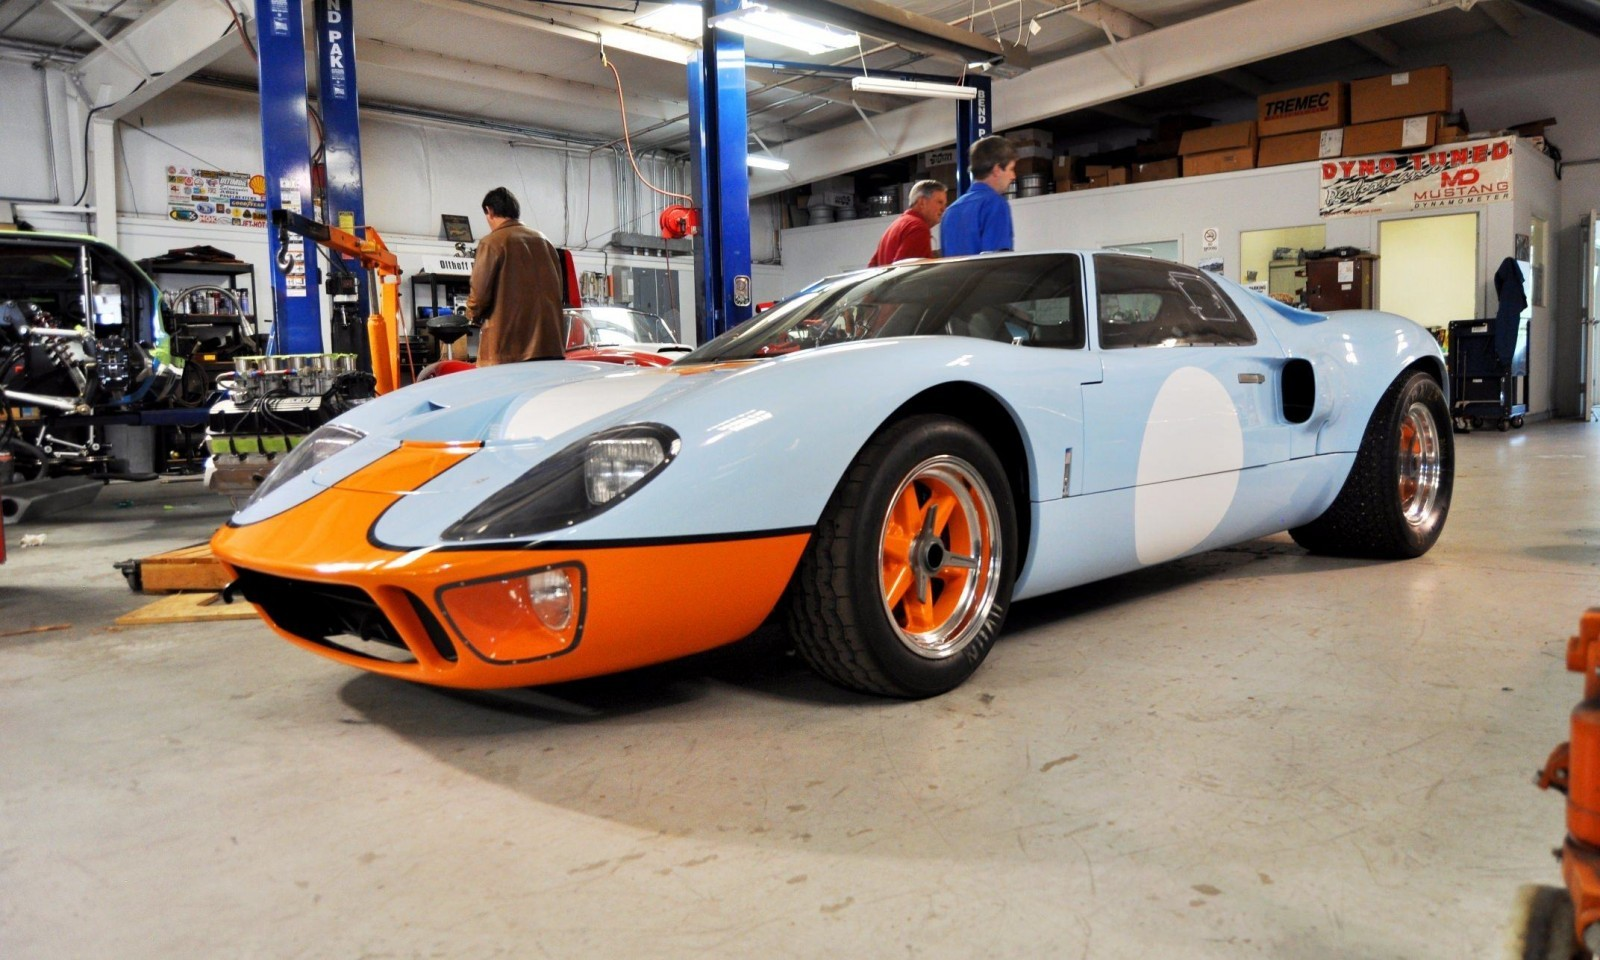 2014 Superformance GT40 Mark I - MEGA Photo Shoot and Ride-Along Videos 8